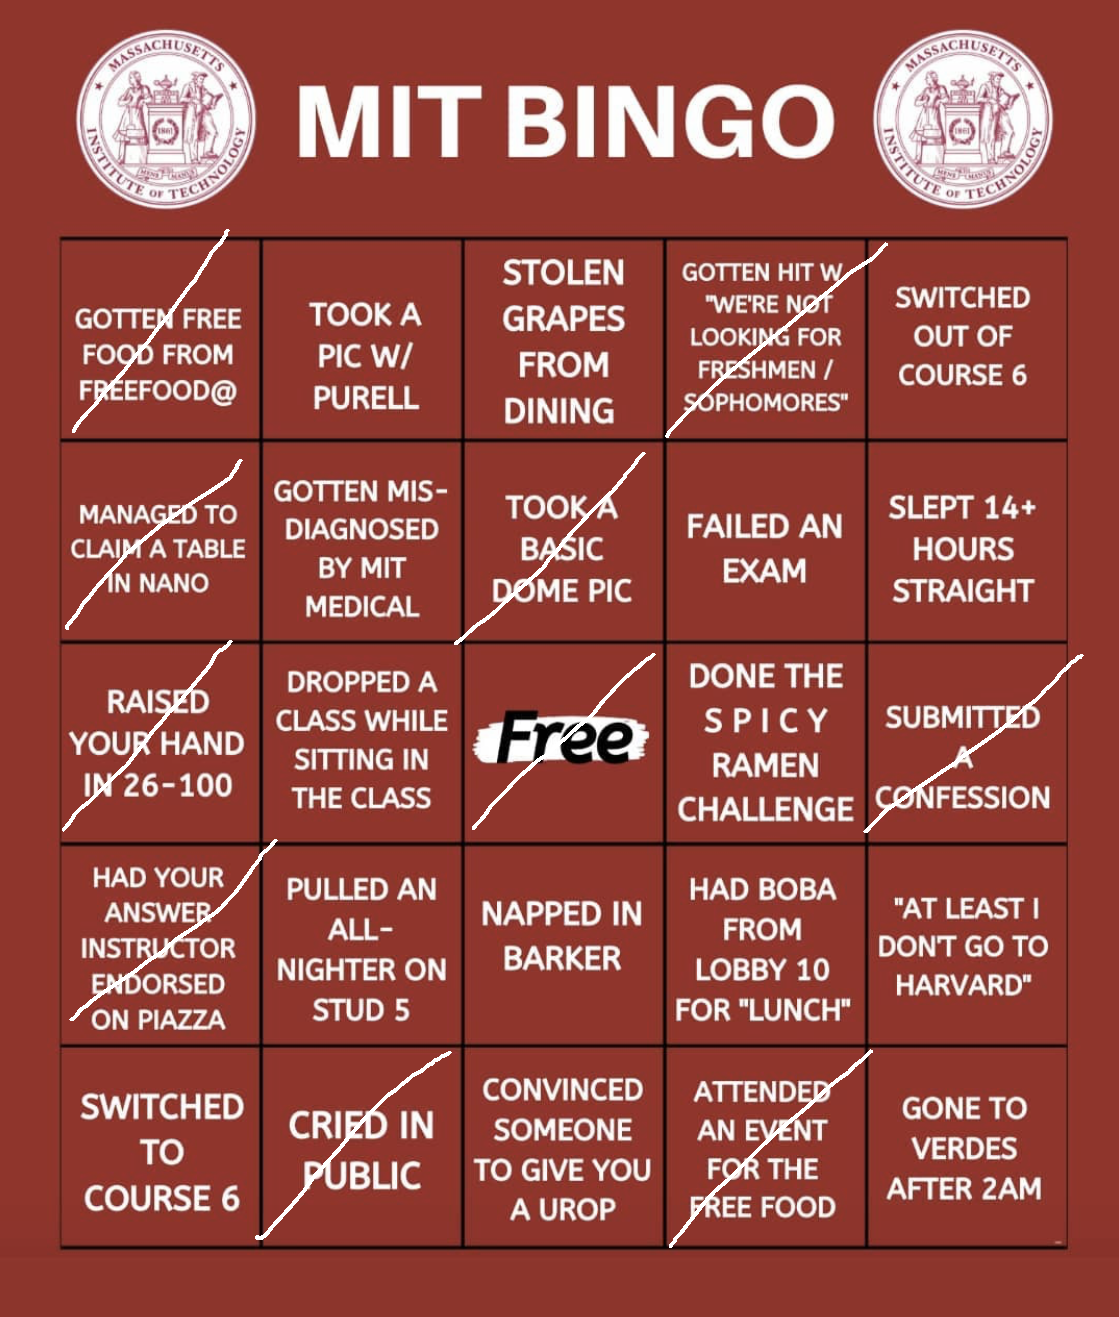 CJ's red bingo. He did not get bingo.